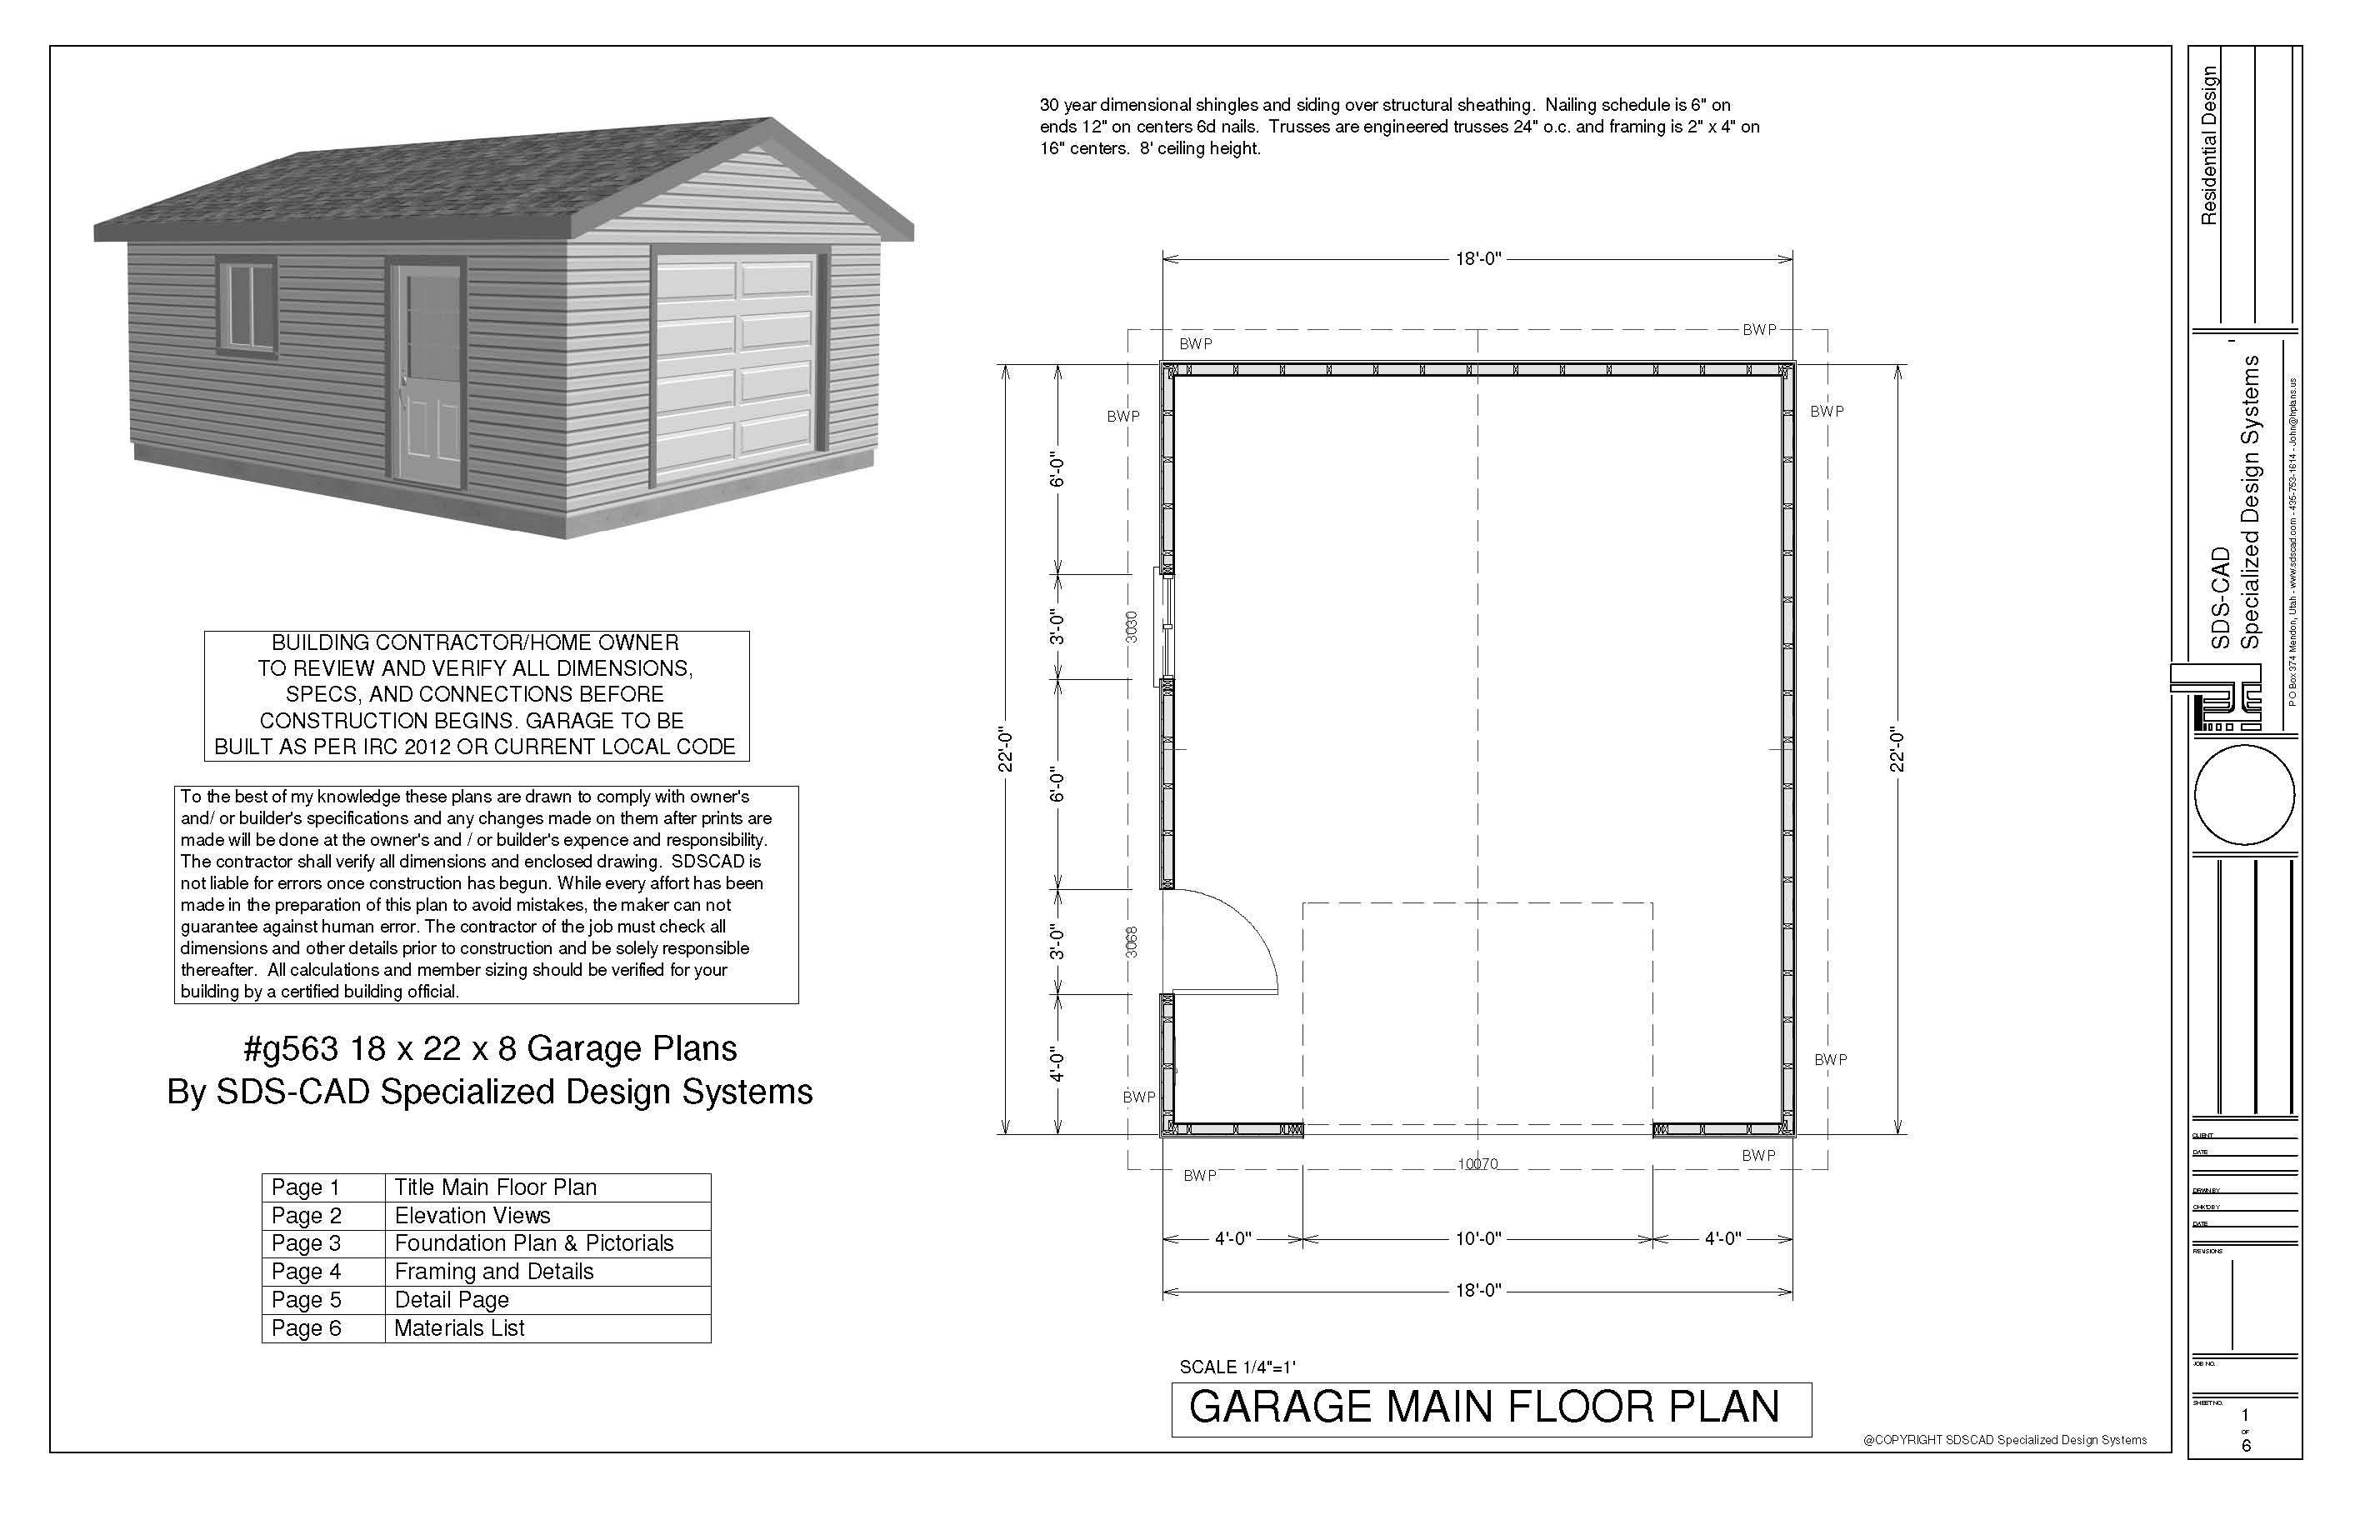 Download free sample garage plan g563 18 x 22 x 8 garage for Garage layout planner online